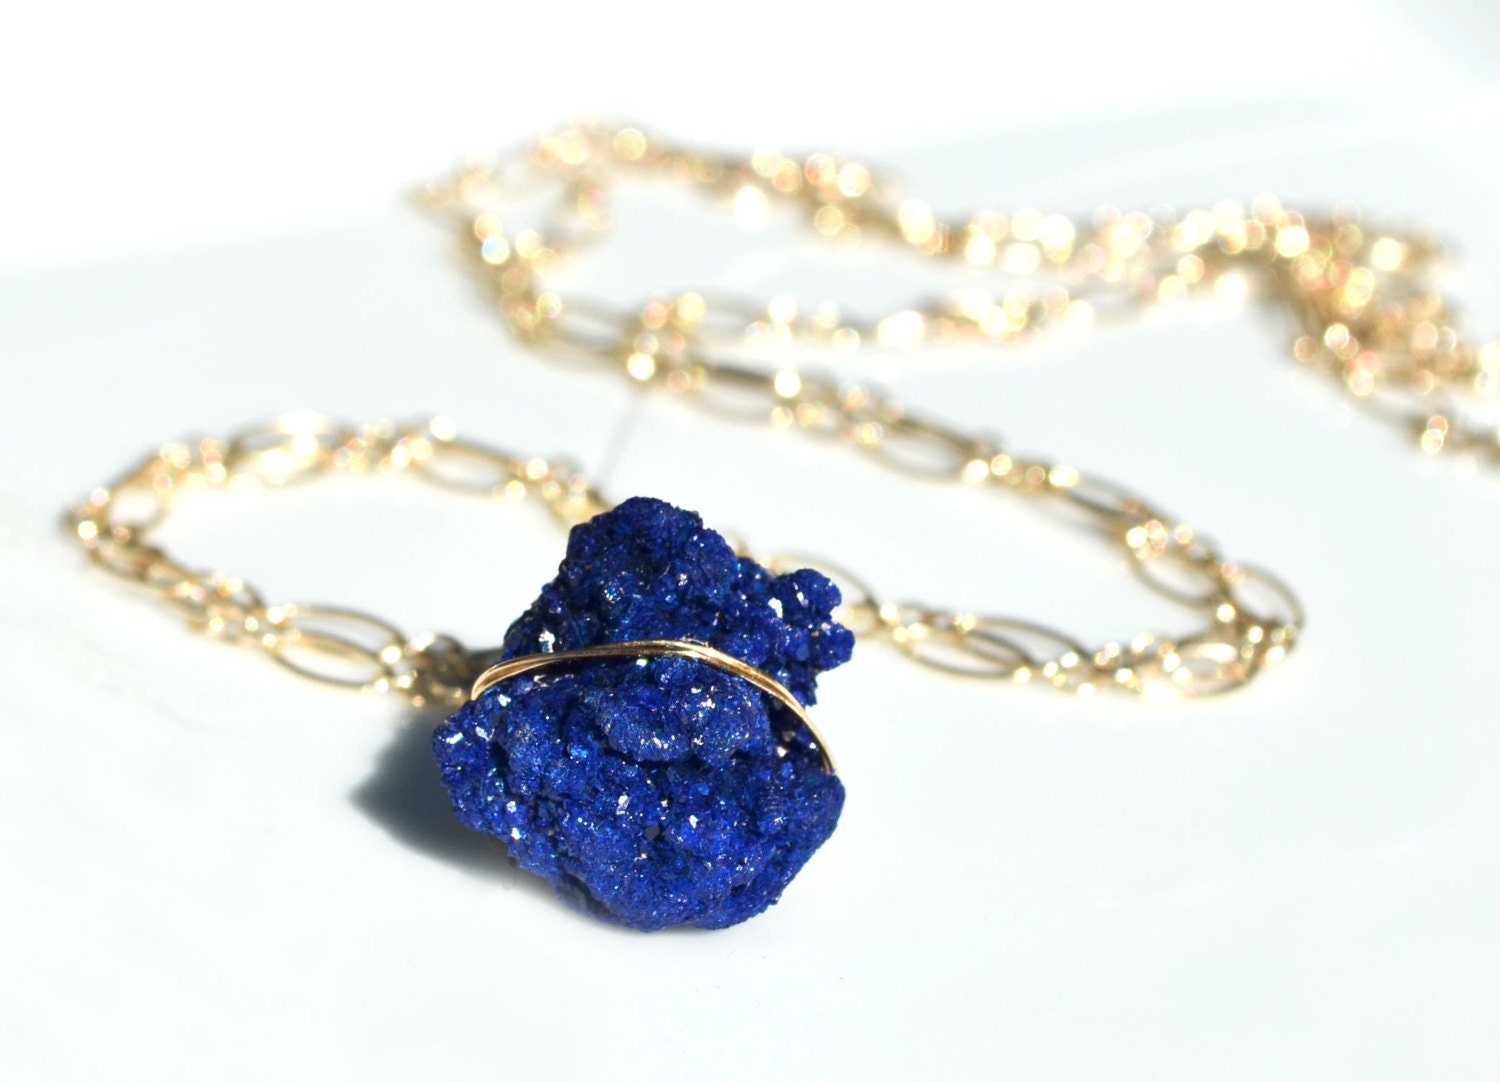 Moroccan Blue Azurite Crystal Cluster Necklace -- Raw Blue Druzy Stone -- In 14k Yellow Gold, Rose Gold, or Sterling Silver - PURYST